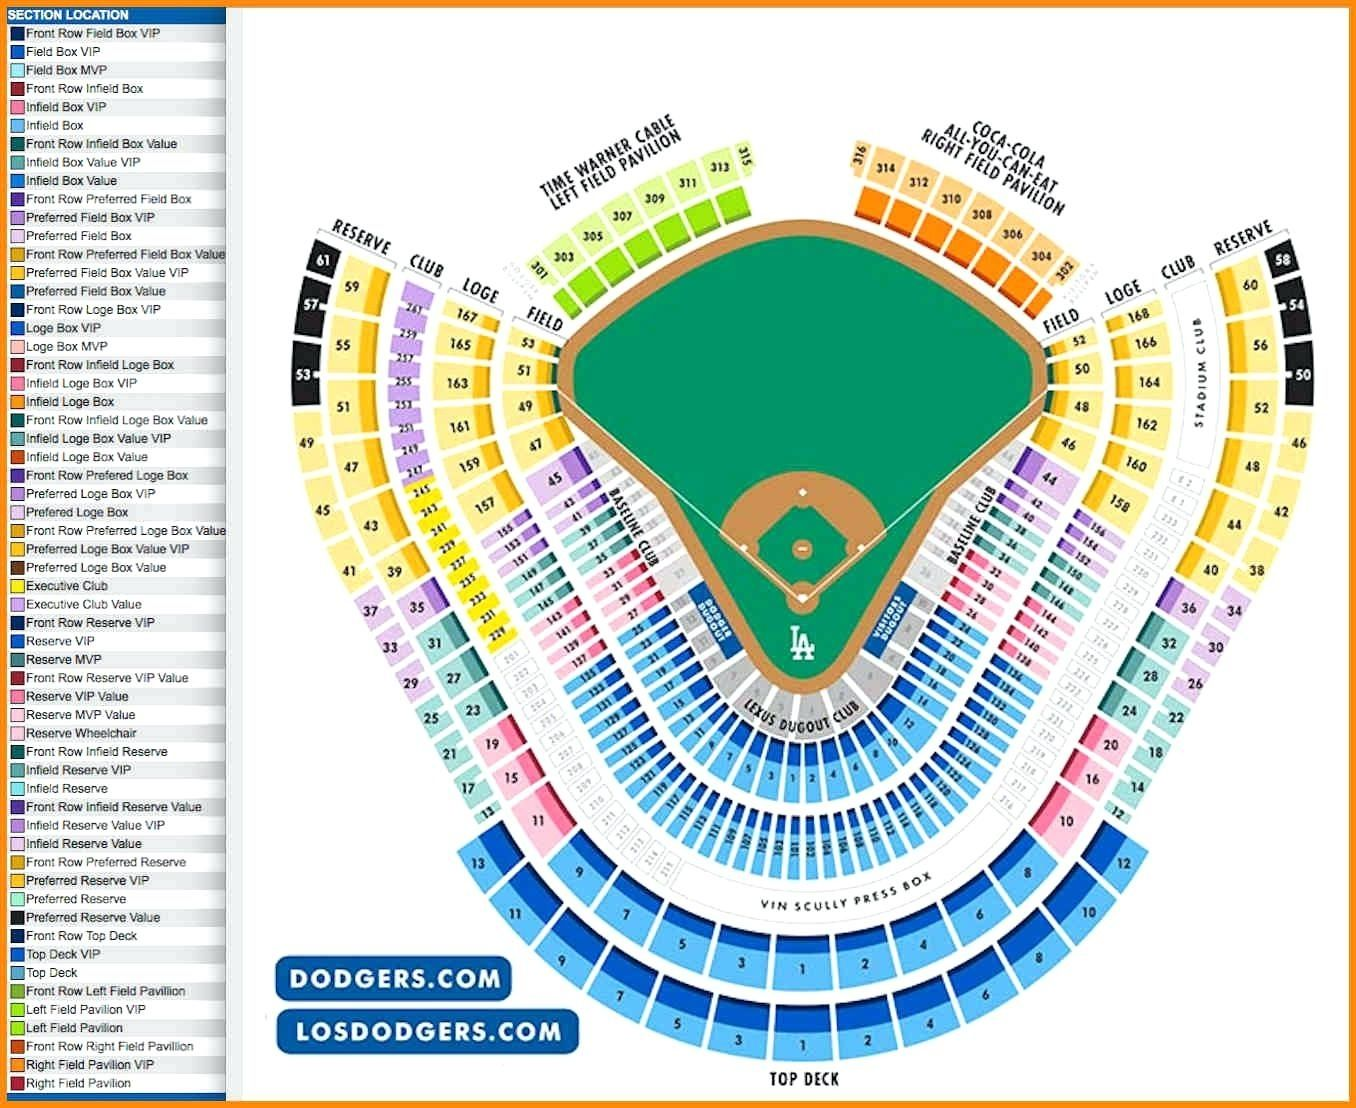 Warner Theater Seating Chart Grim And Mount Baker Theatre In The Inside Dodger Stadium Seating Chart With S Dodger Stadium Seating Chart Dodger Stadium Dodgers